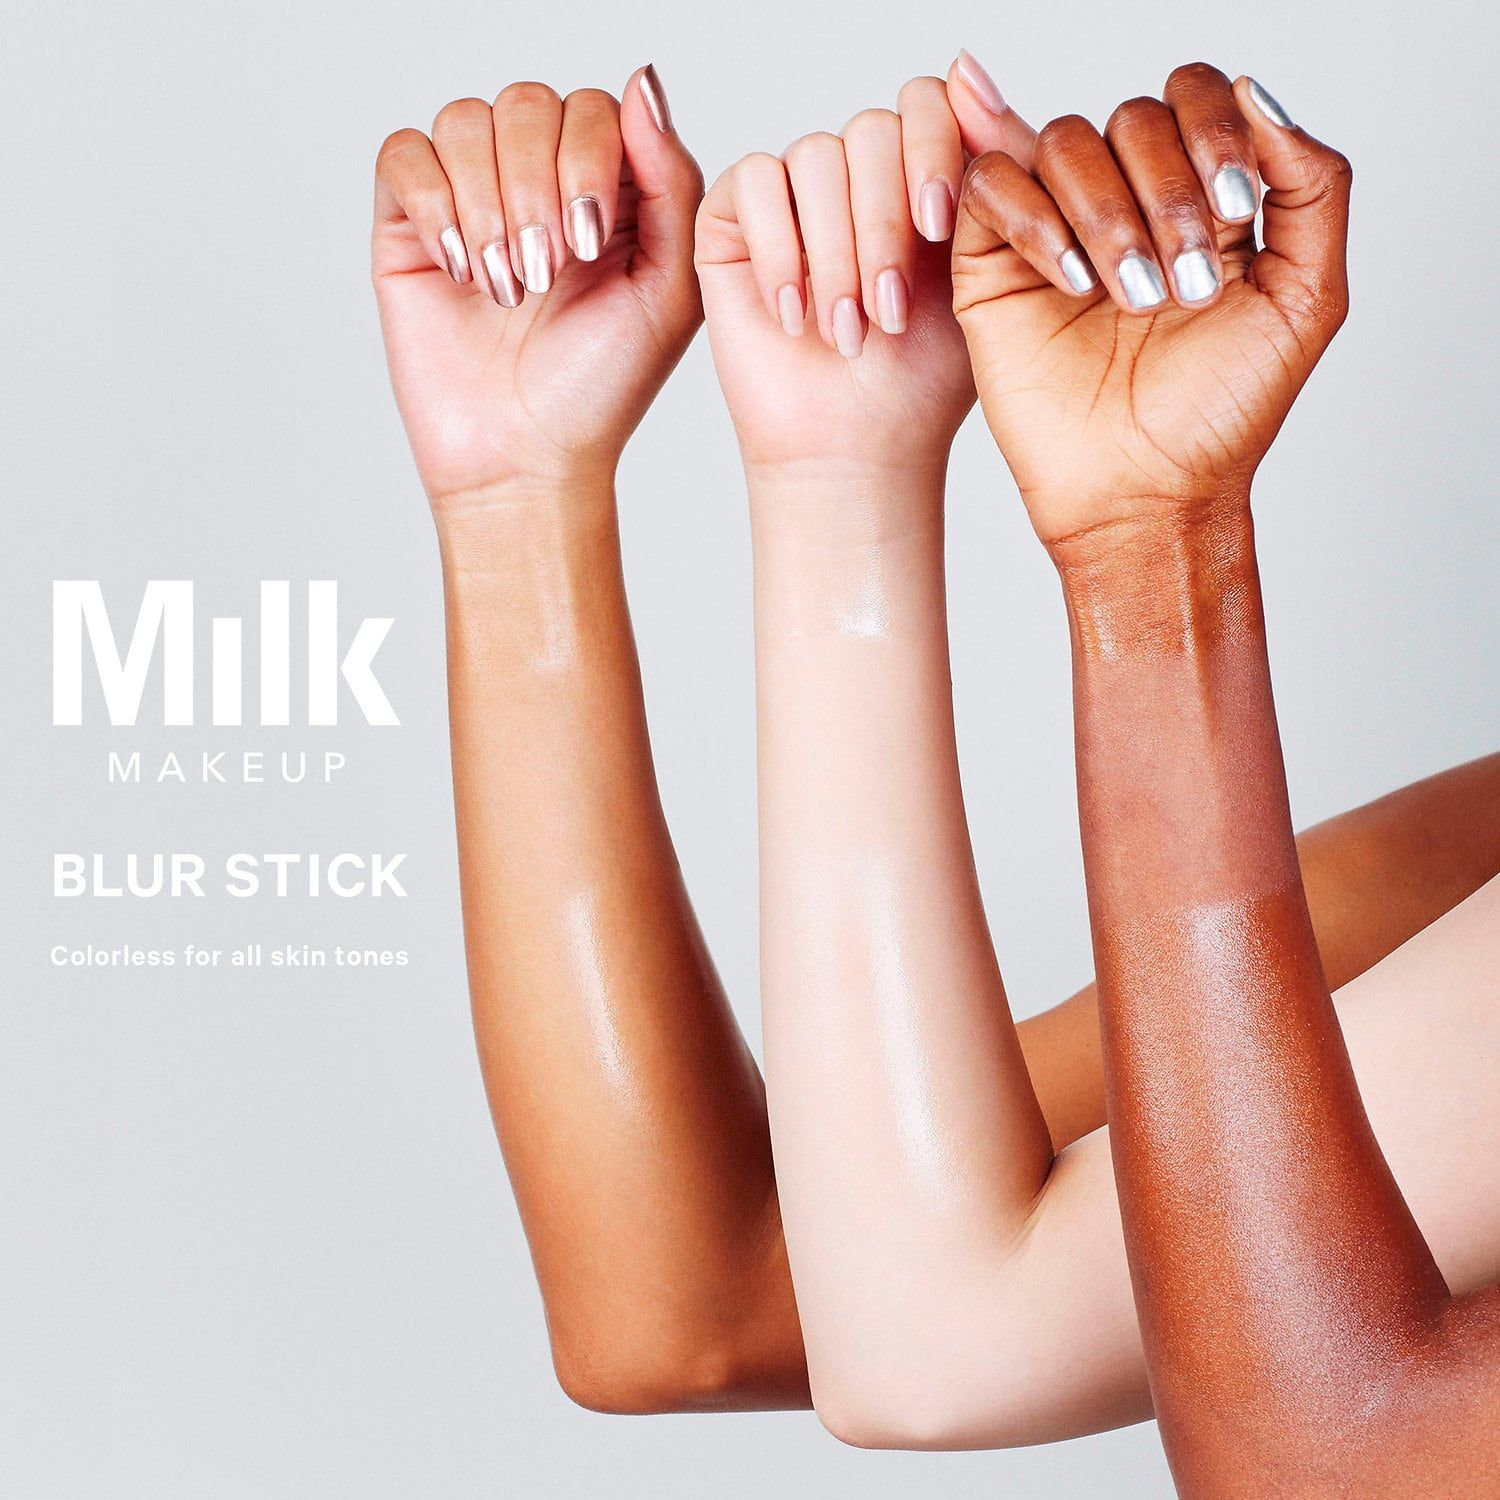 Blur Stick MILK MAKEUP Sephora Milk makeup blur